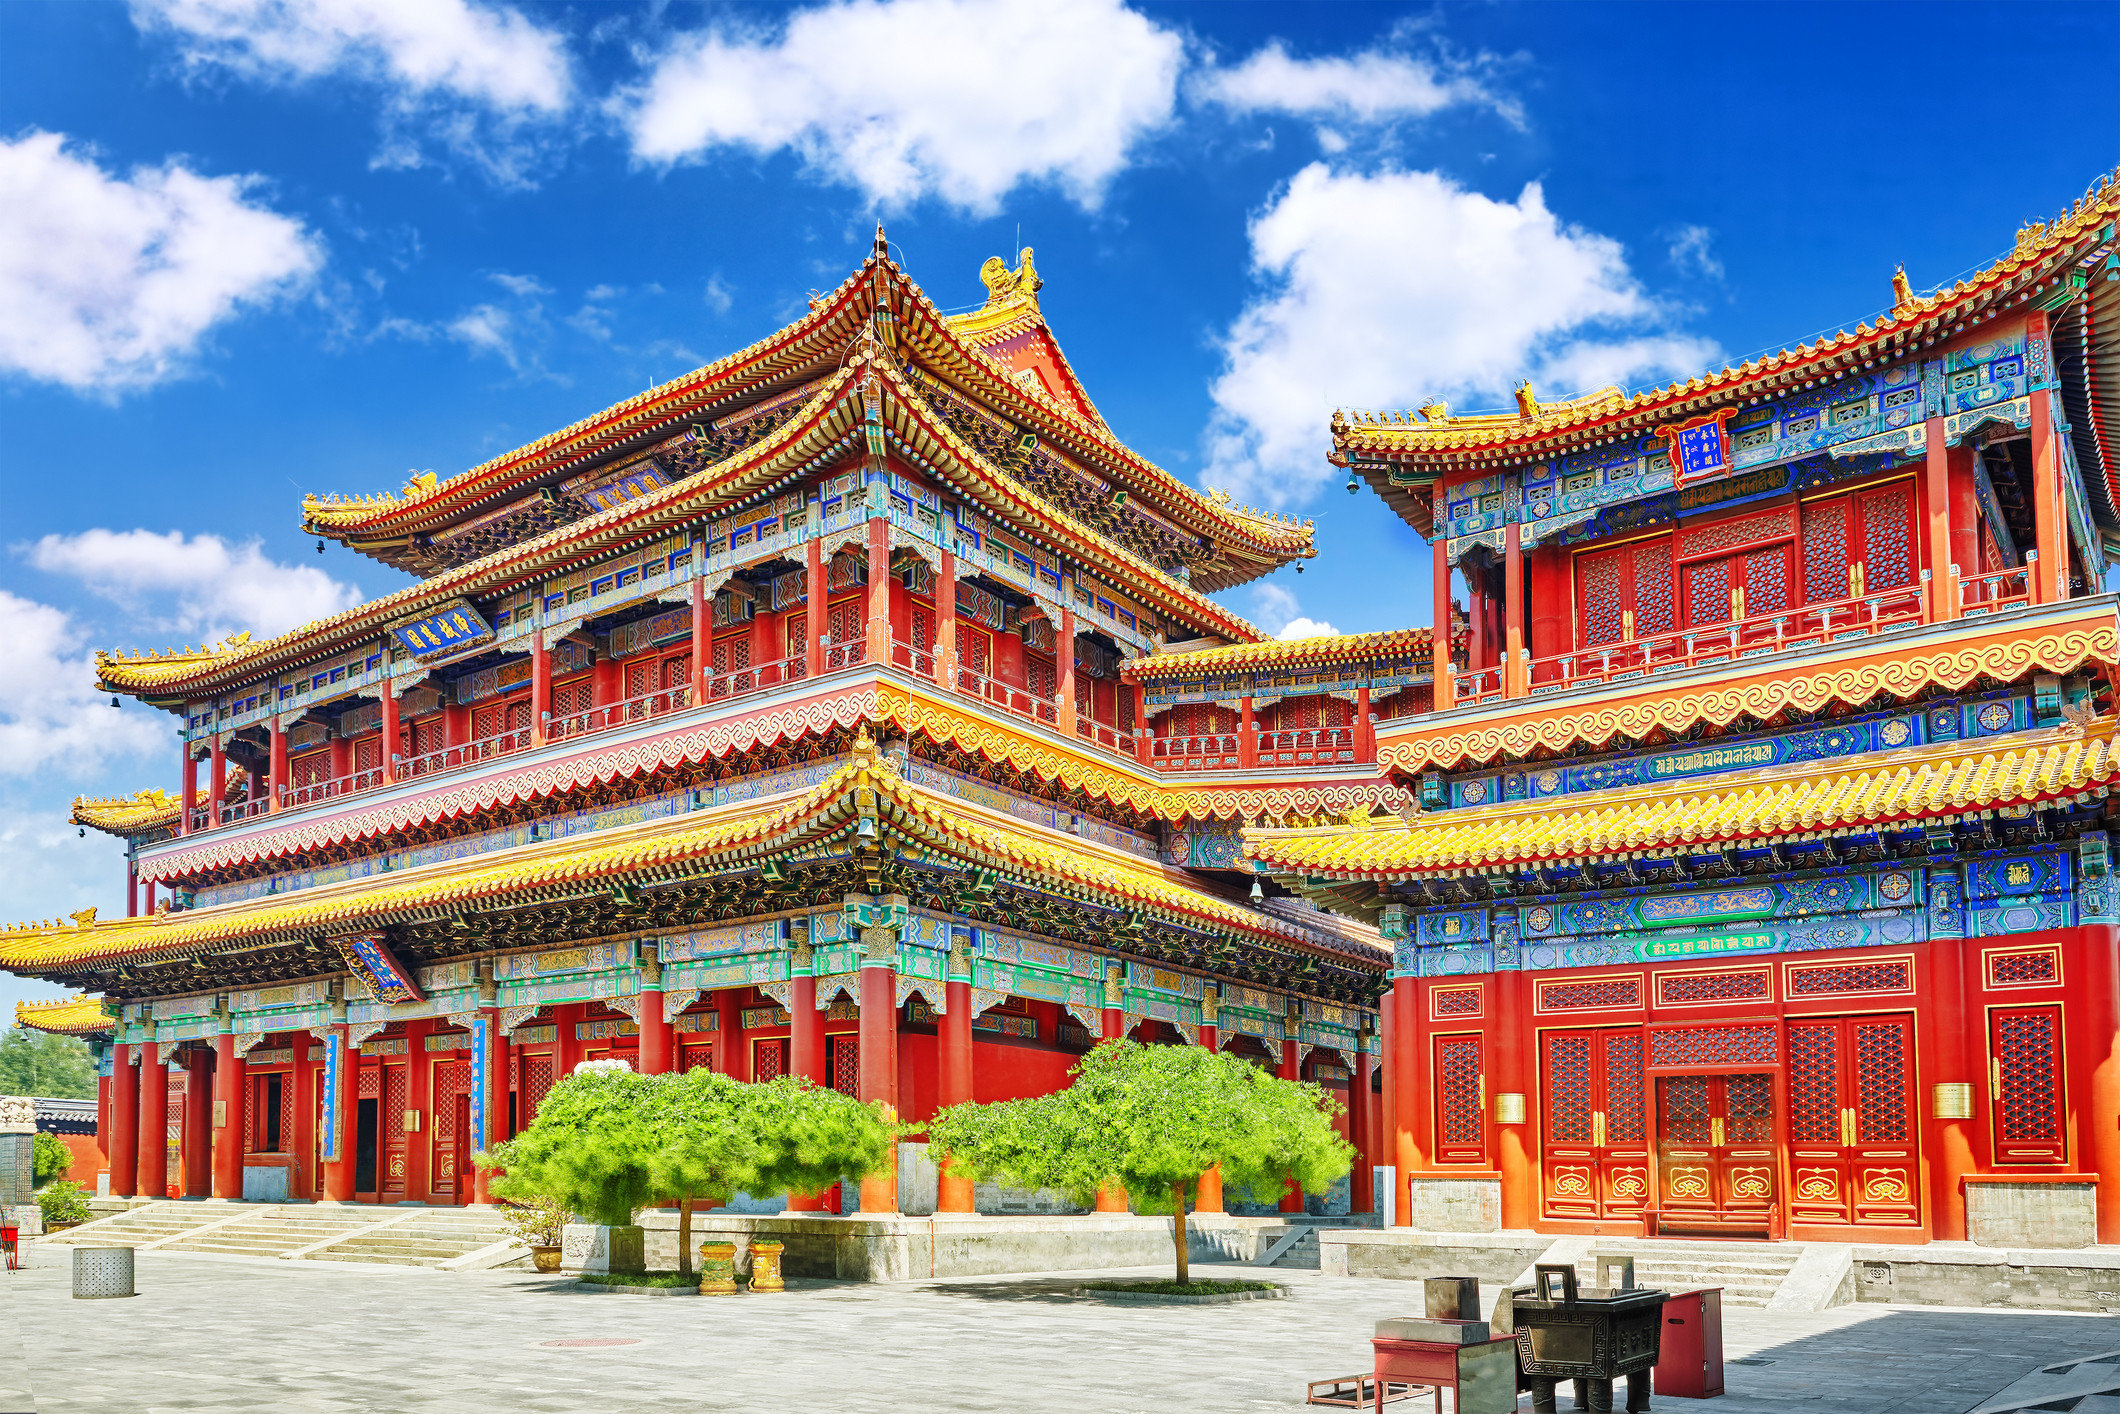 Trip Ideas sky place of worship chinese architecture lamasery temple building historic site landmark hindu temple palace pagoda tower shrine shinto shrine orange colorful